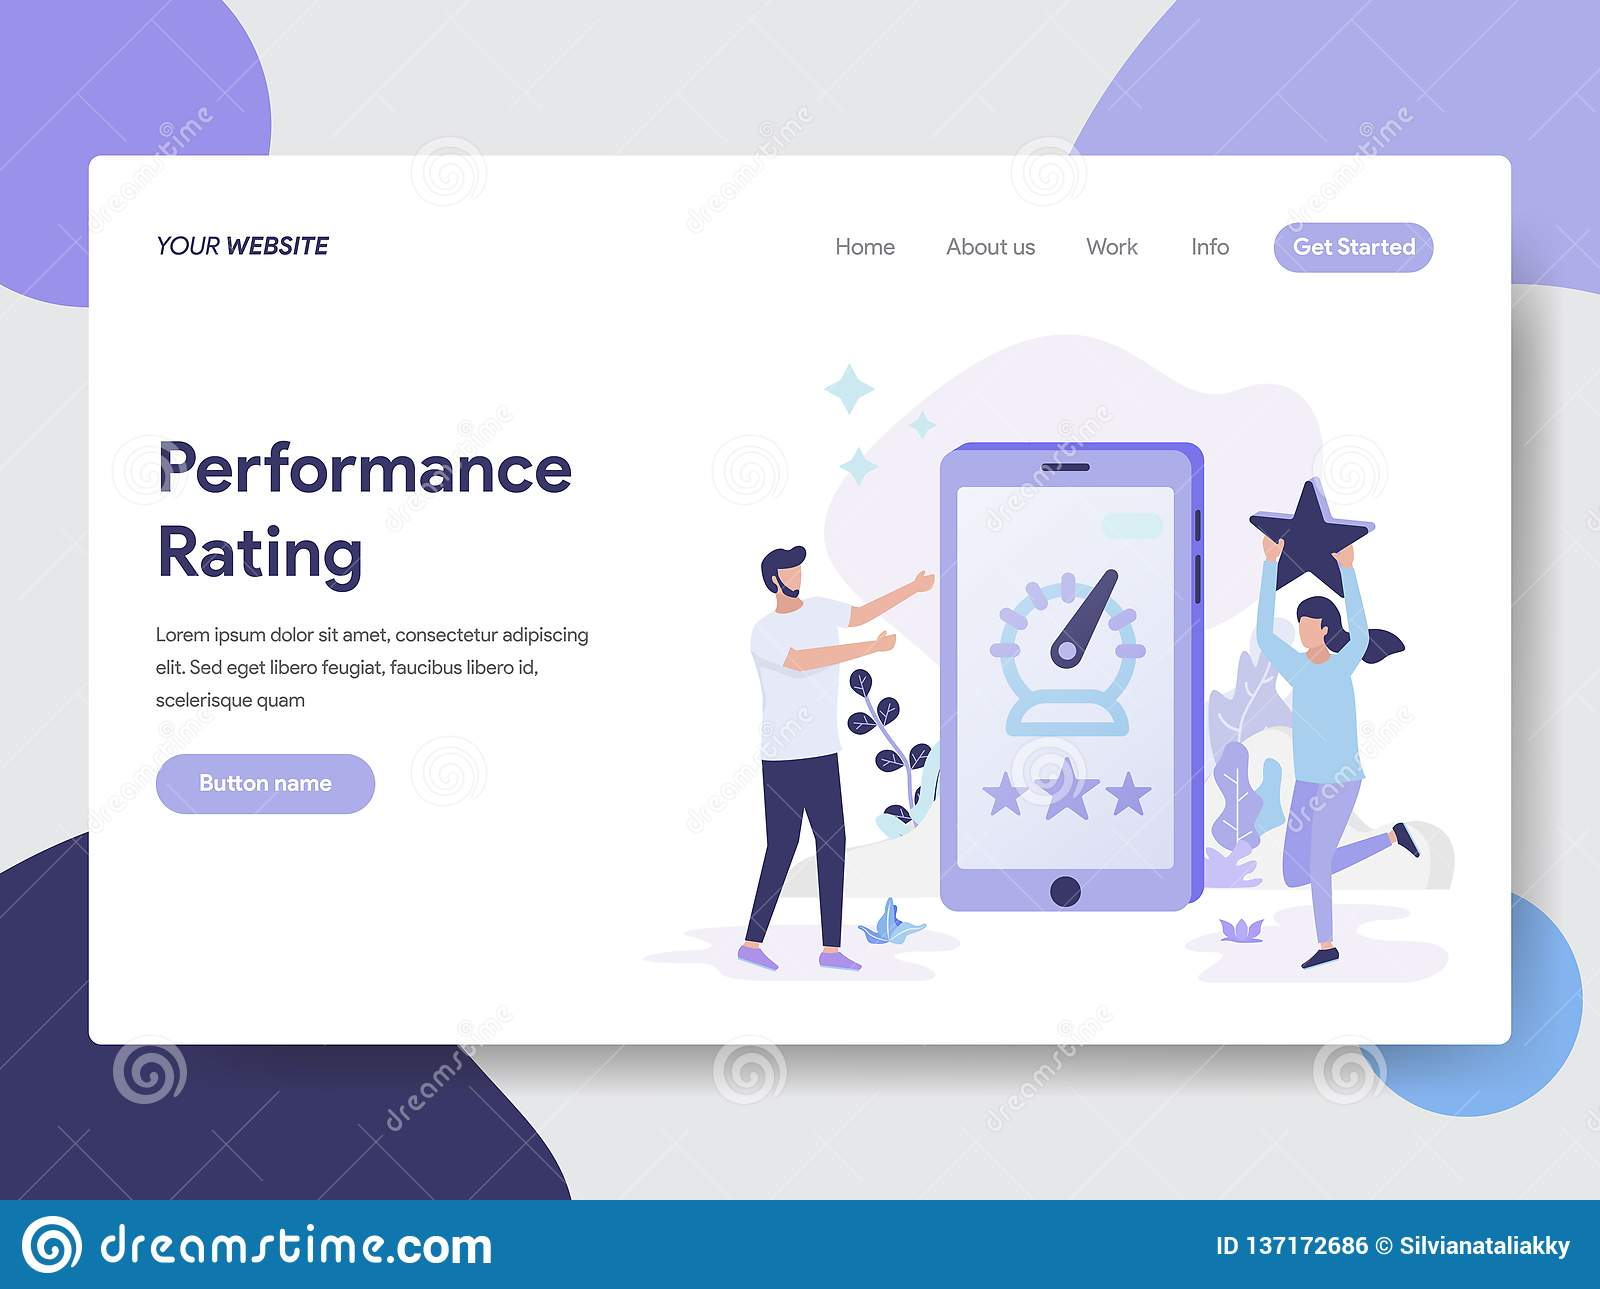 Landing page template of Performance Rating Illustration Concept. Modern flat design concept of web page design for website and